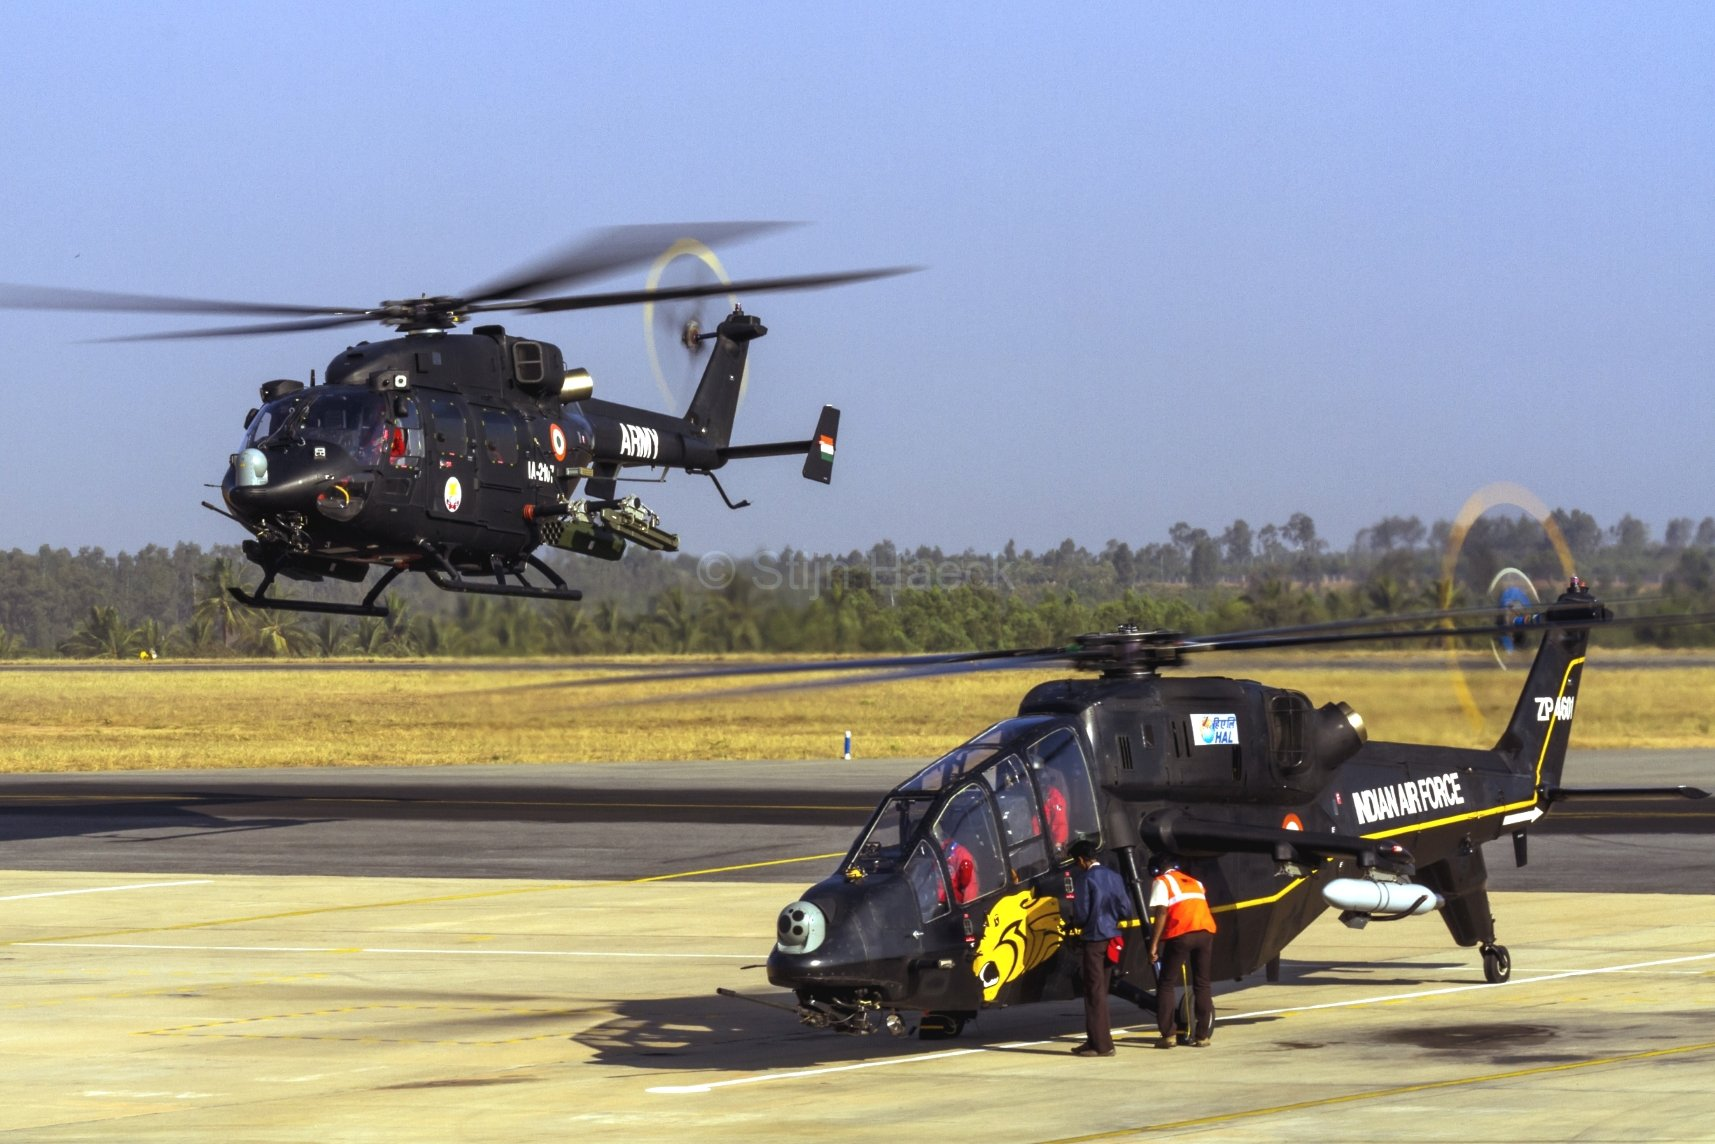 2992038-hal-rudra-hal-light-combat-helicopter-lch-helicopters___mixed-wallpapers.jpg